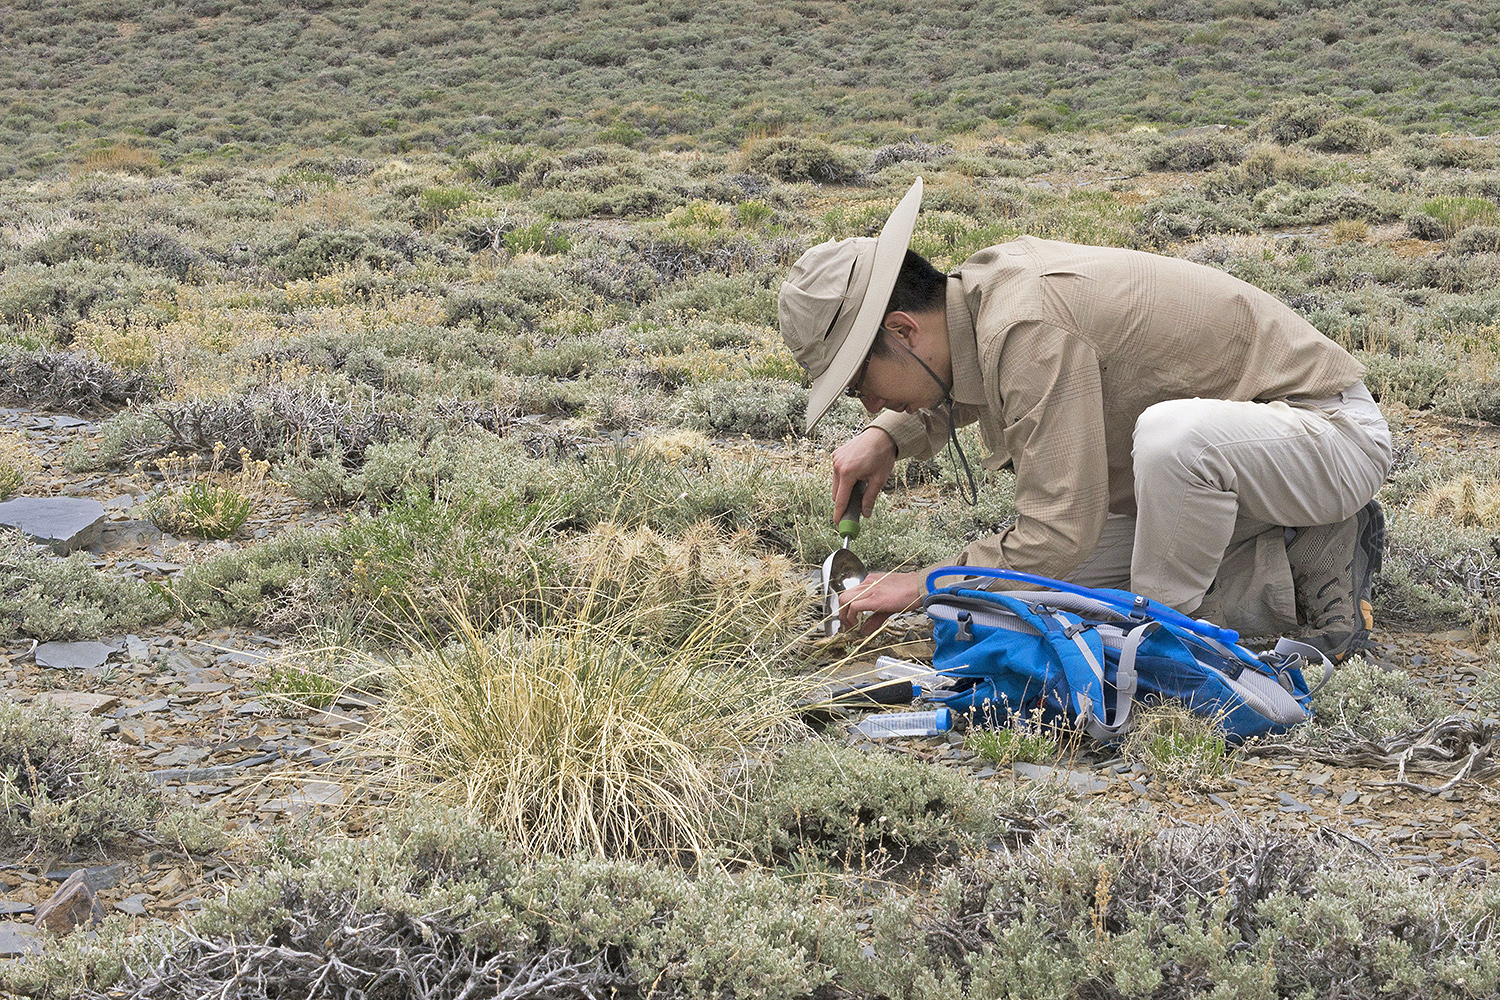 Graduate student Jerry Lee samples a prickly pear cactus rhizosphere at about 6,000 feet above sea level.